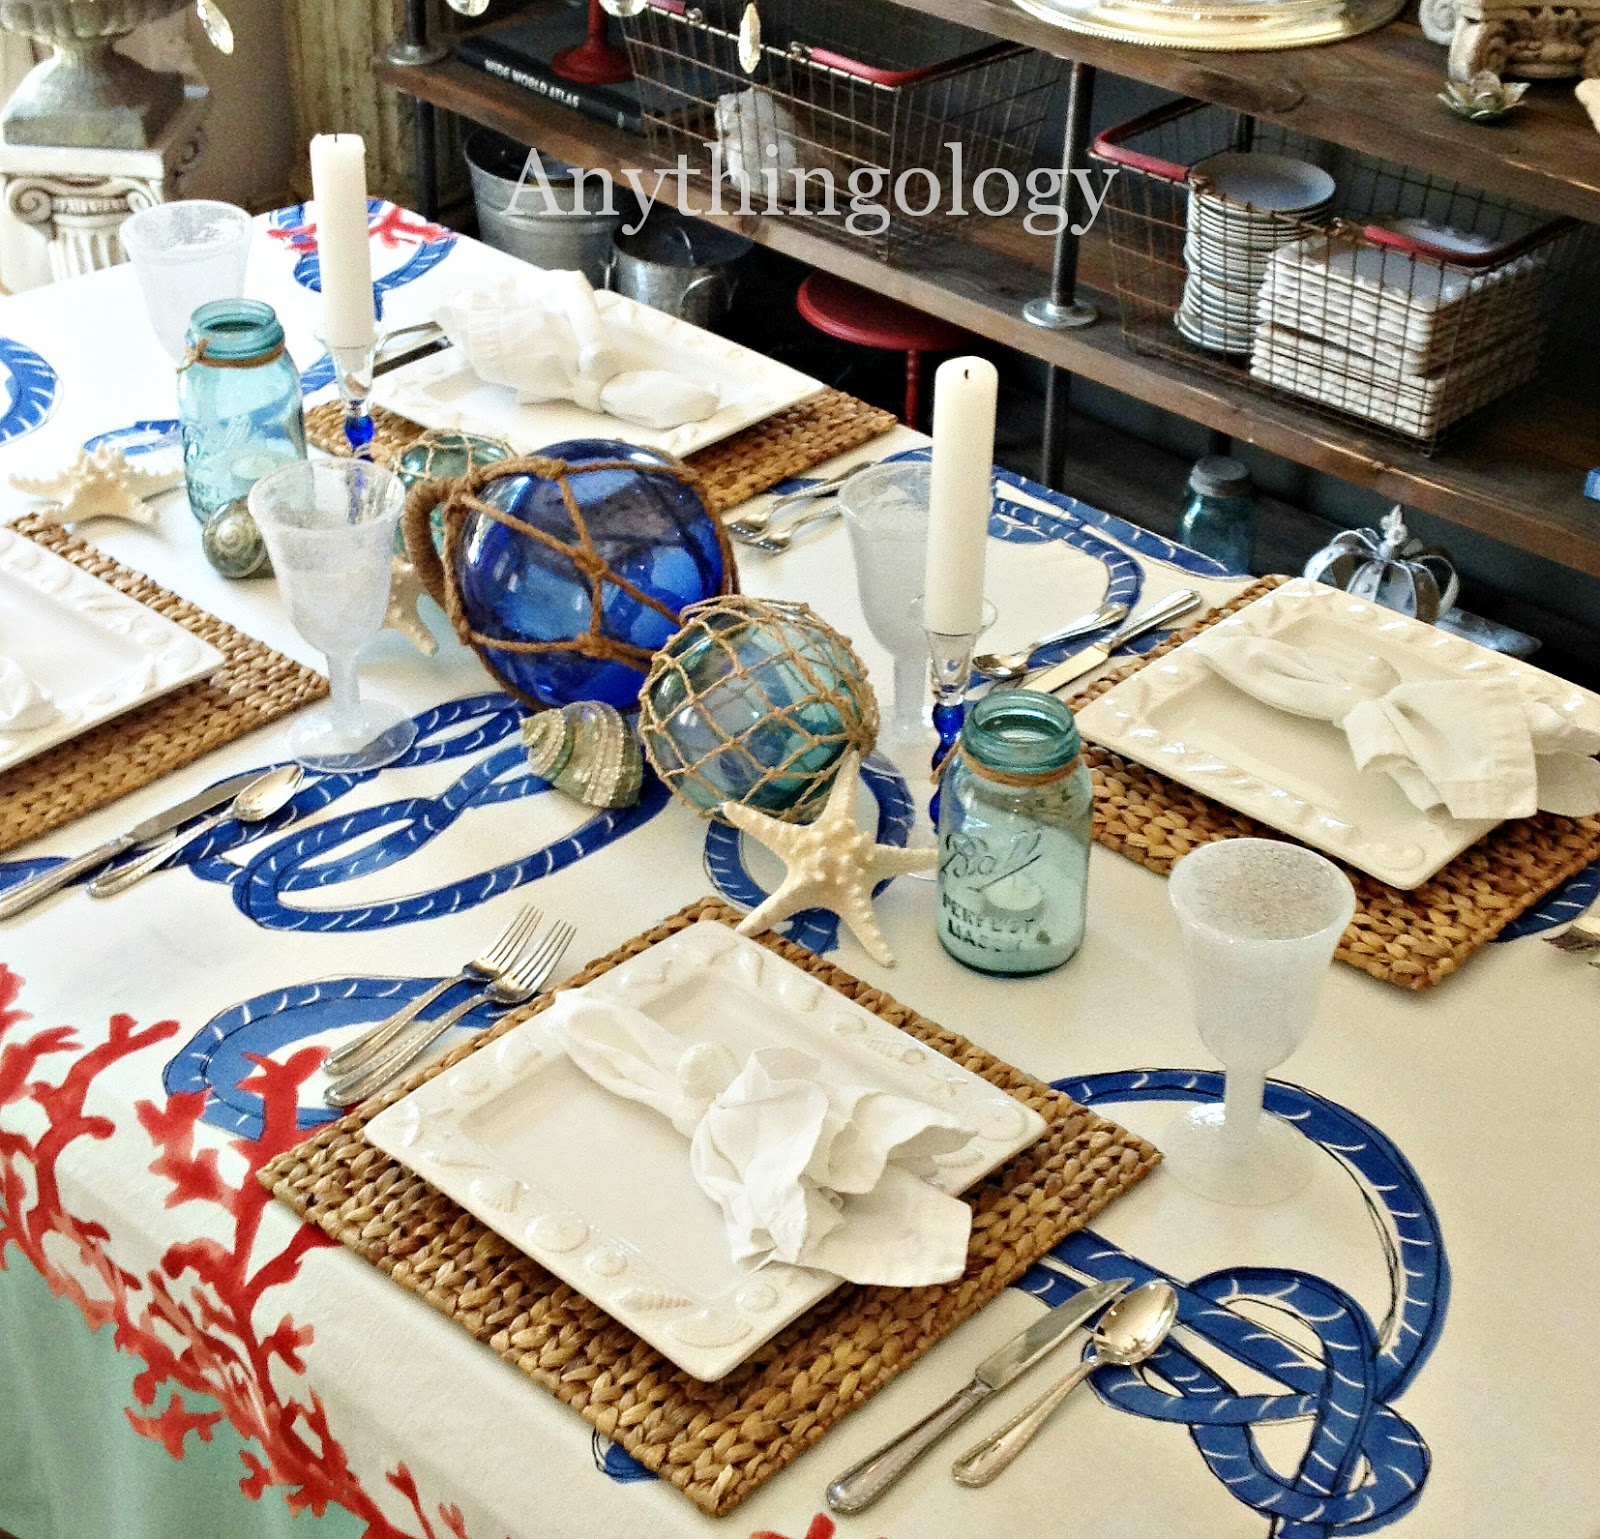 Nautical Decor Centerpieces: Anythingology: Nautical Dinner Party